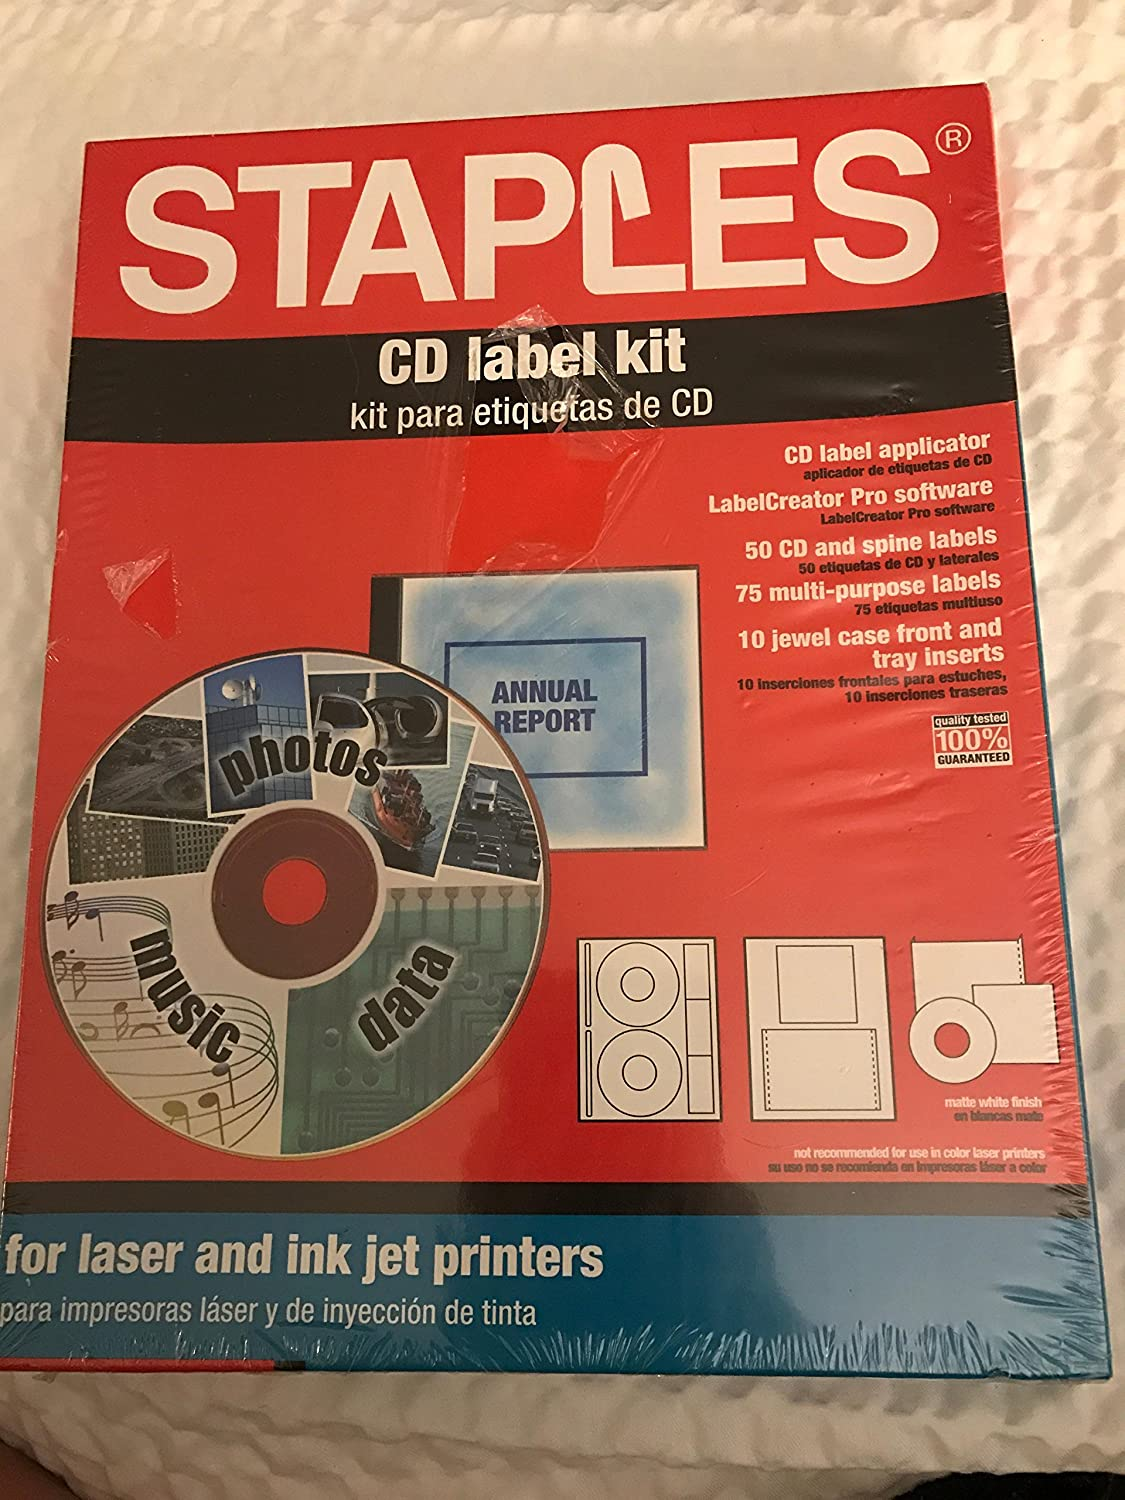 Staples CD Label Kit